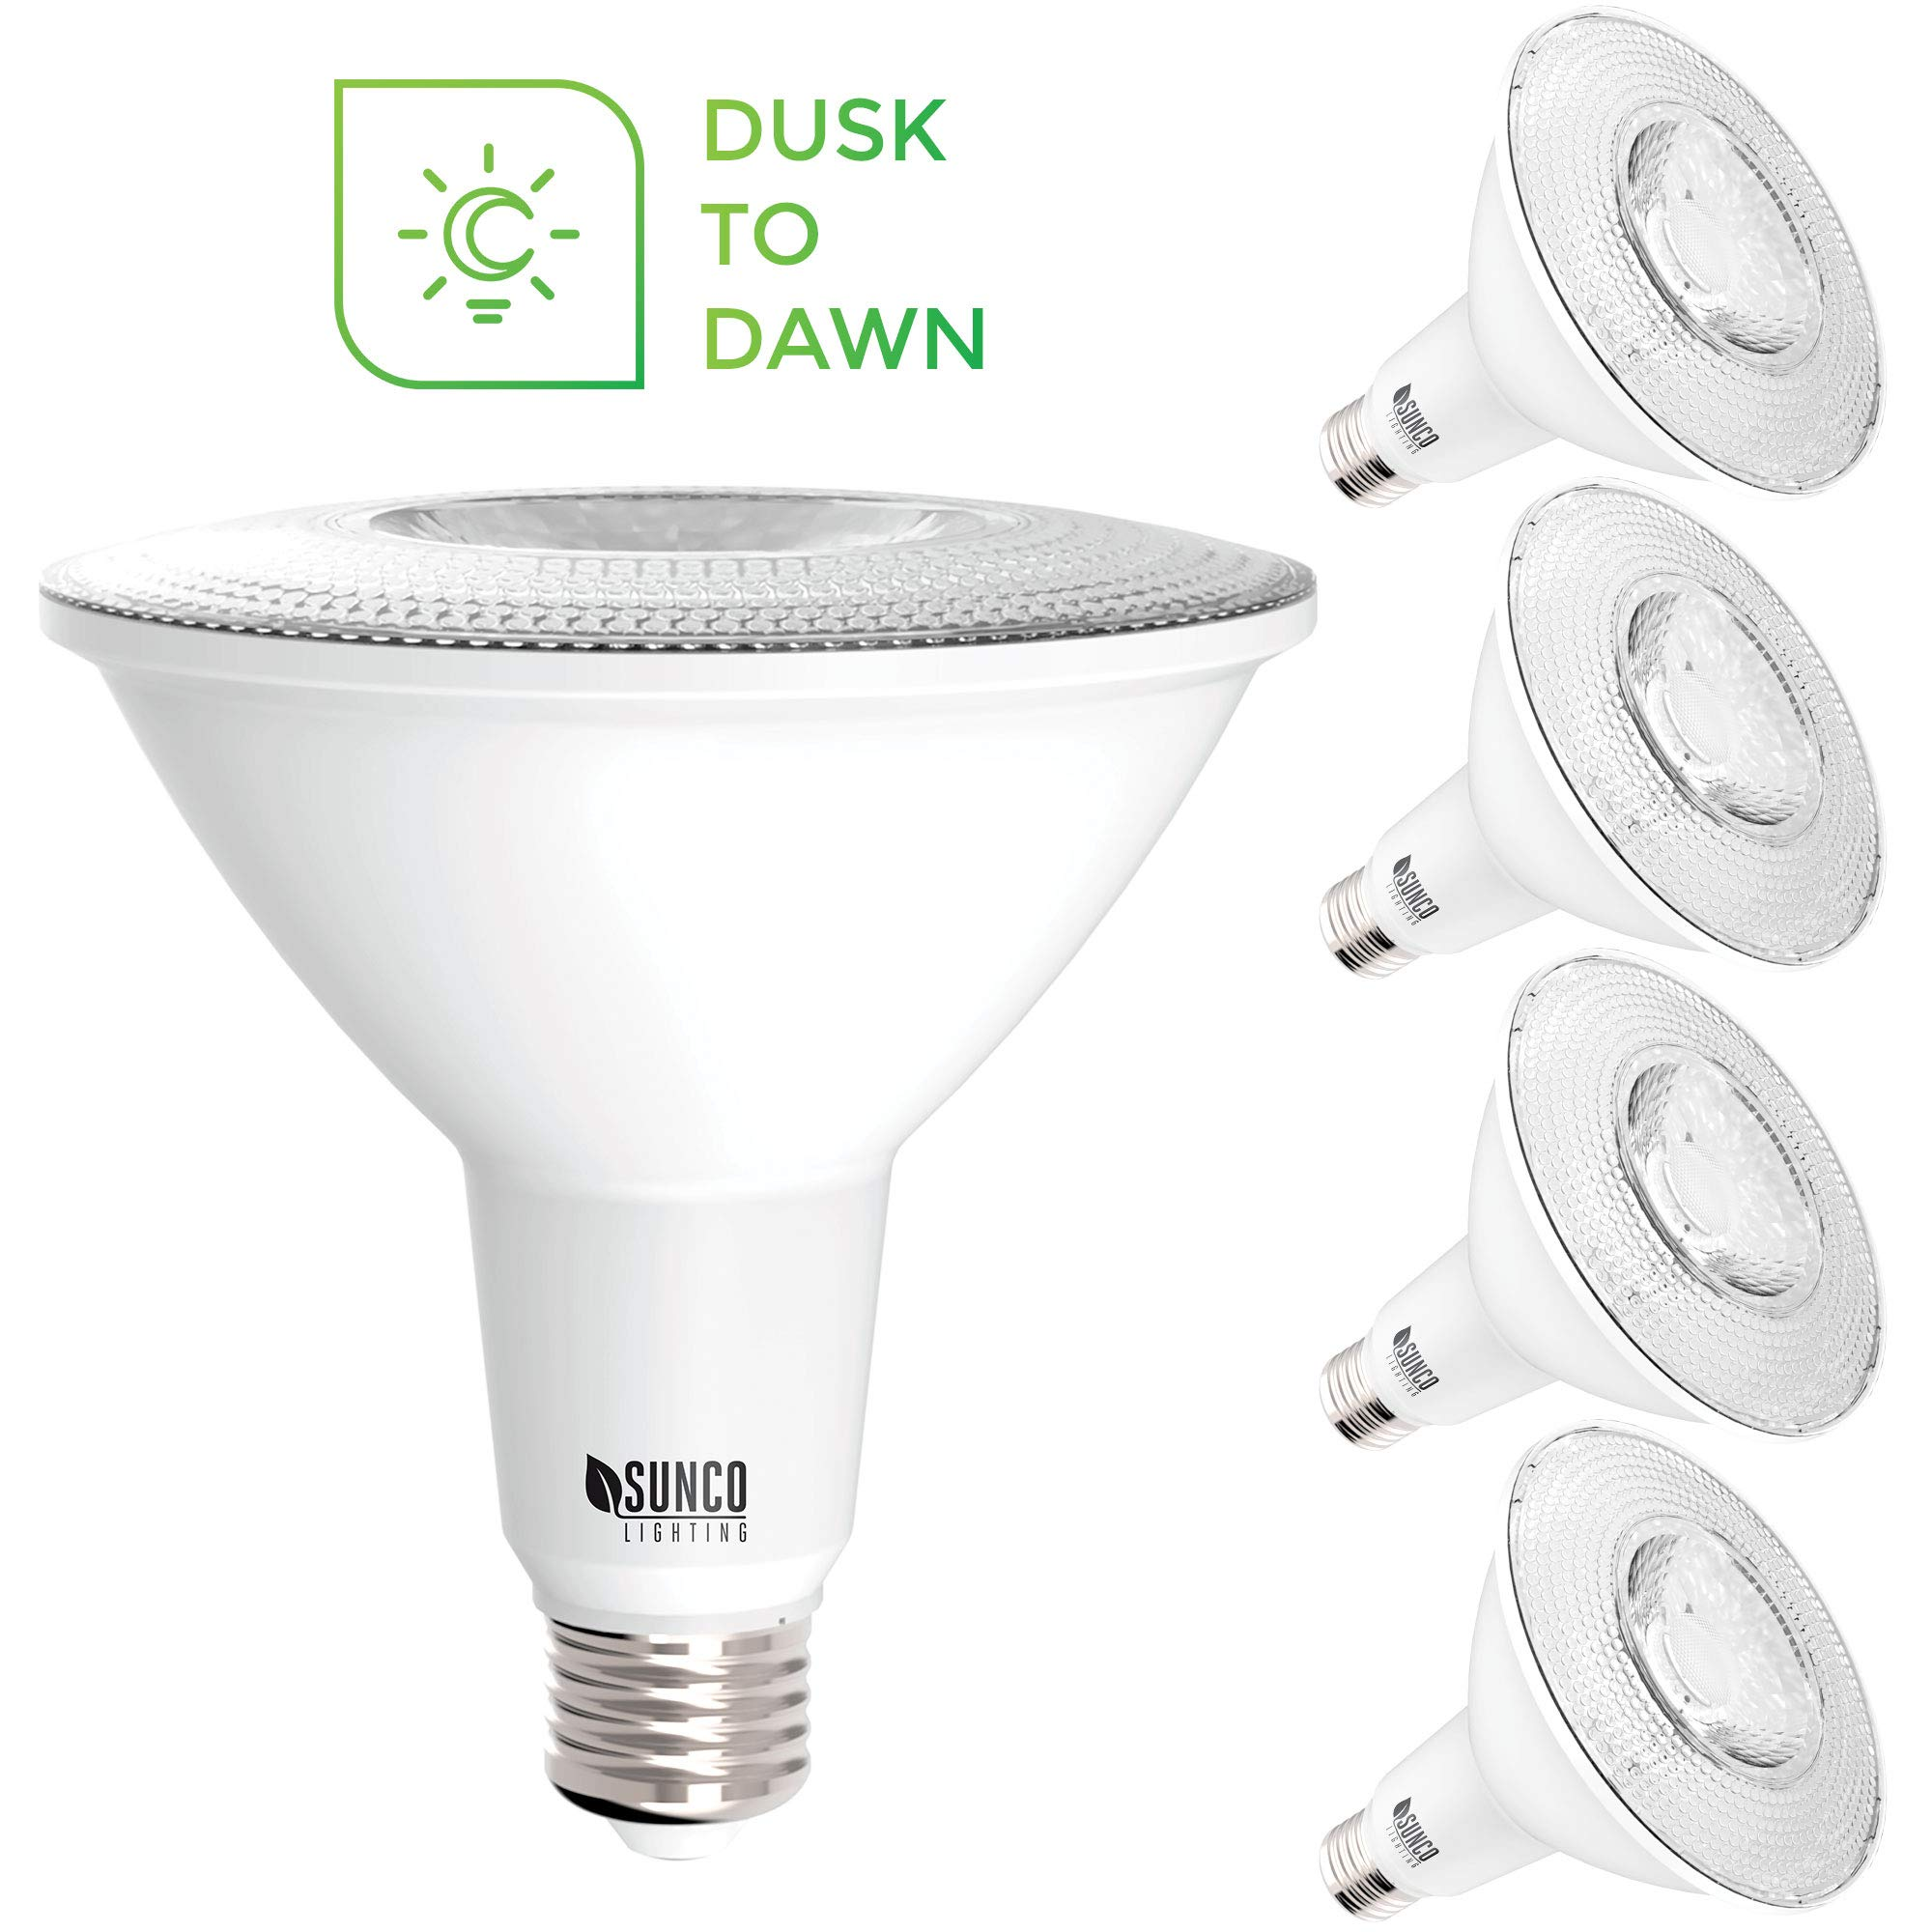 Sunco Lighting 4 Pack PAR38 LED Bulb with Dusk-to-Dawn Photocell Sensor, 15W=120W, 5000K Daylight, 1250 LM, Auto On/Off, Security Flood Light Indoor/Outdoor - UL by Sunco Lighting